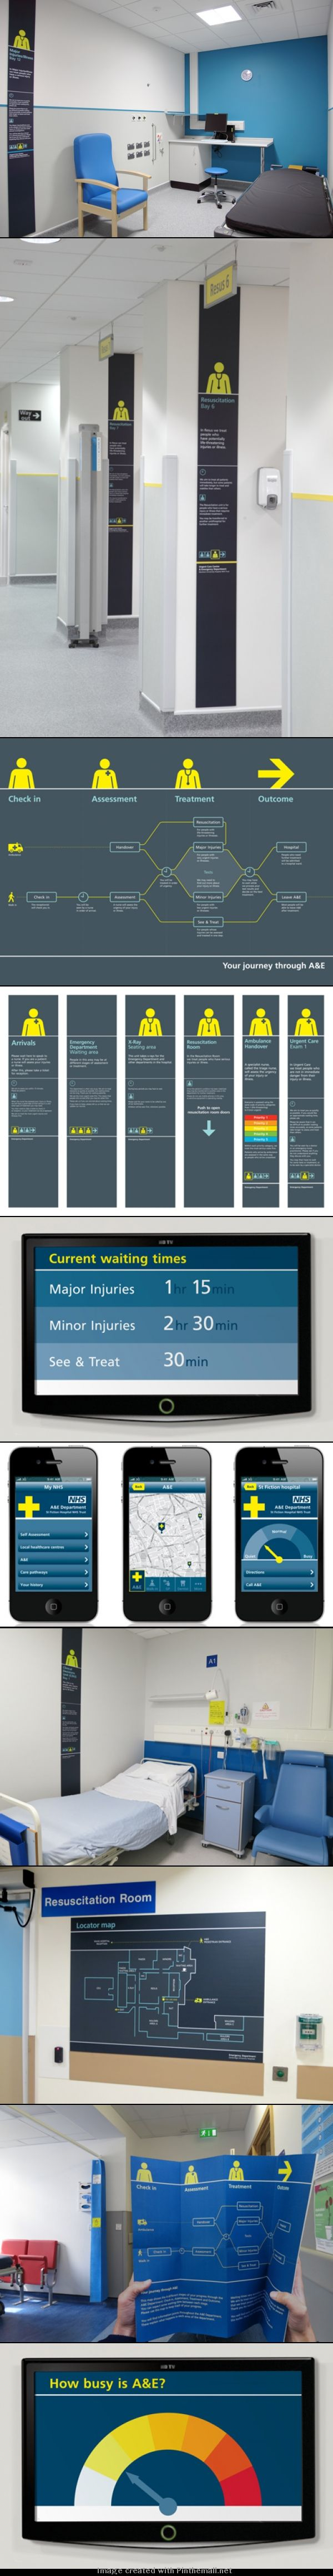 """Signage system designed for hospitals  """"reduces violence by 50 percent"""""""